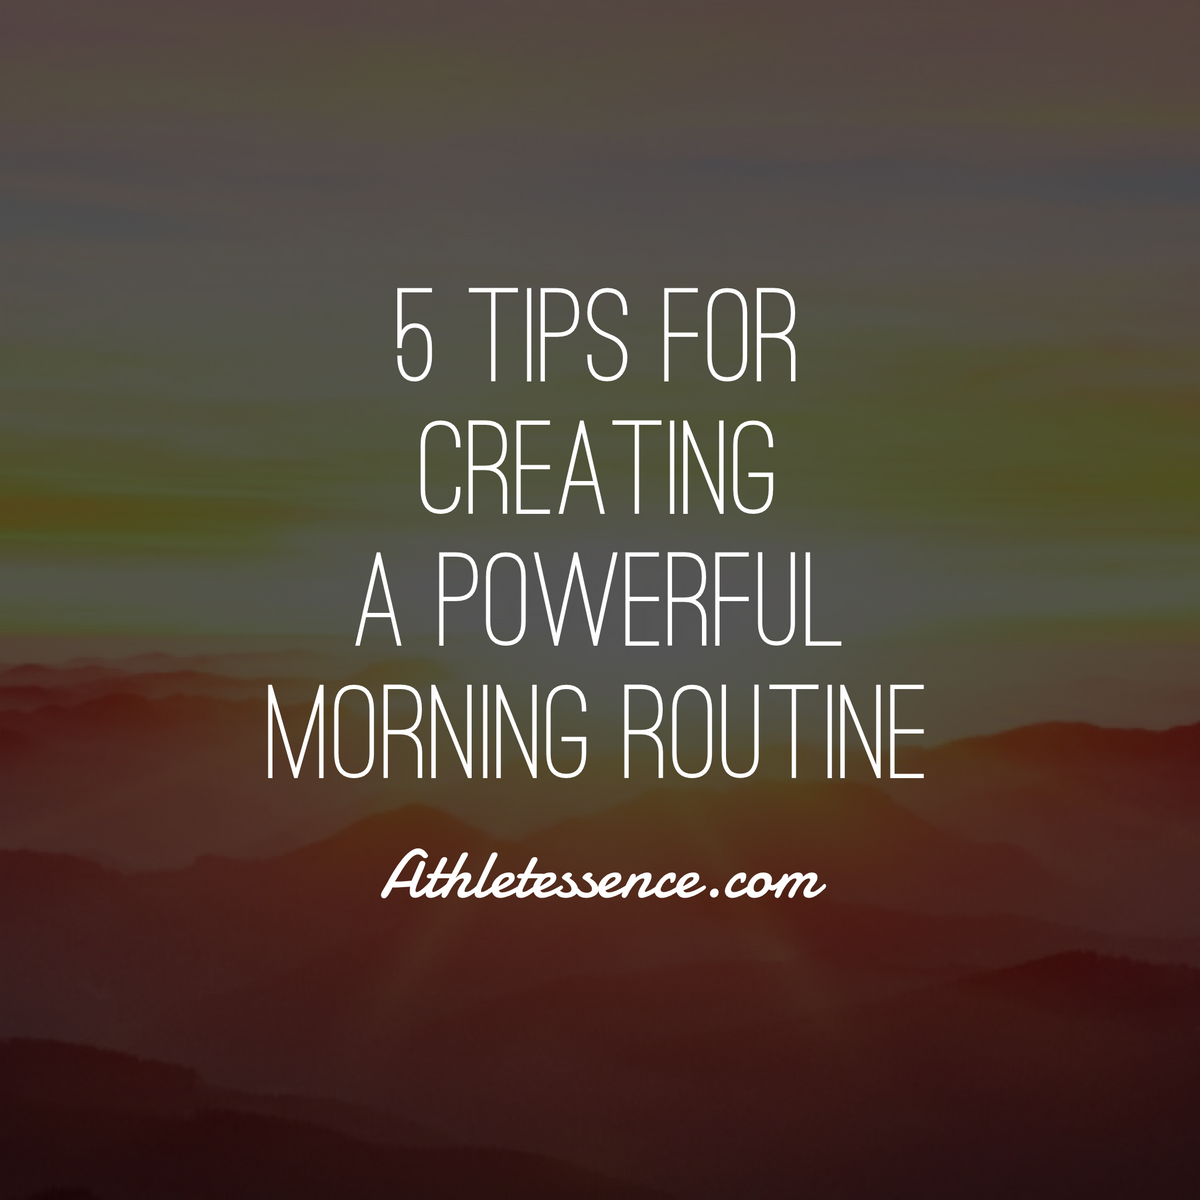 5 Tips For Creating a Powerful Morning Routine